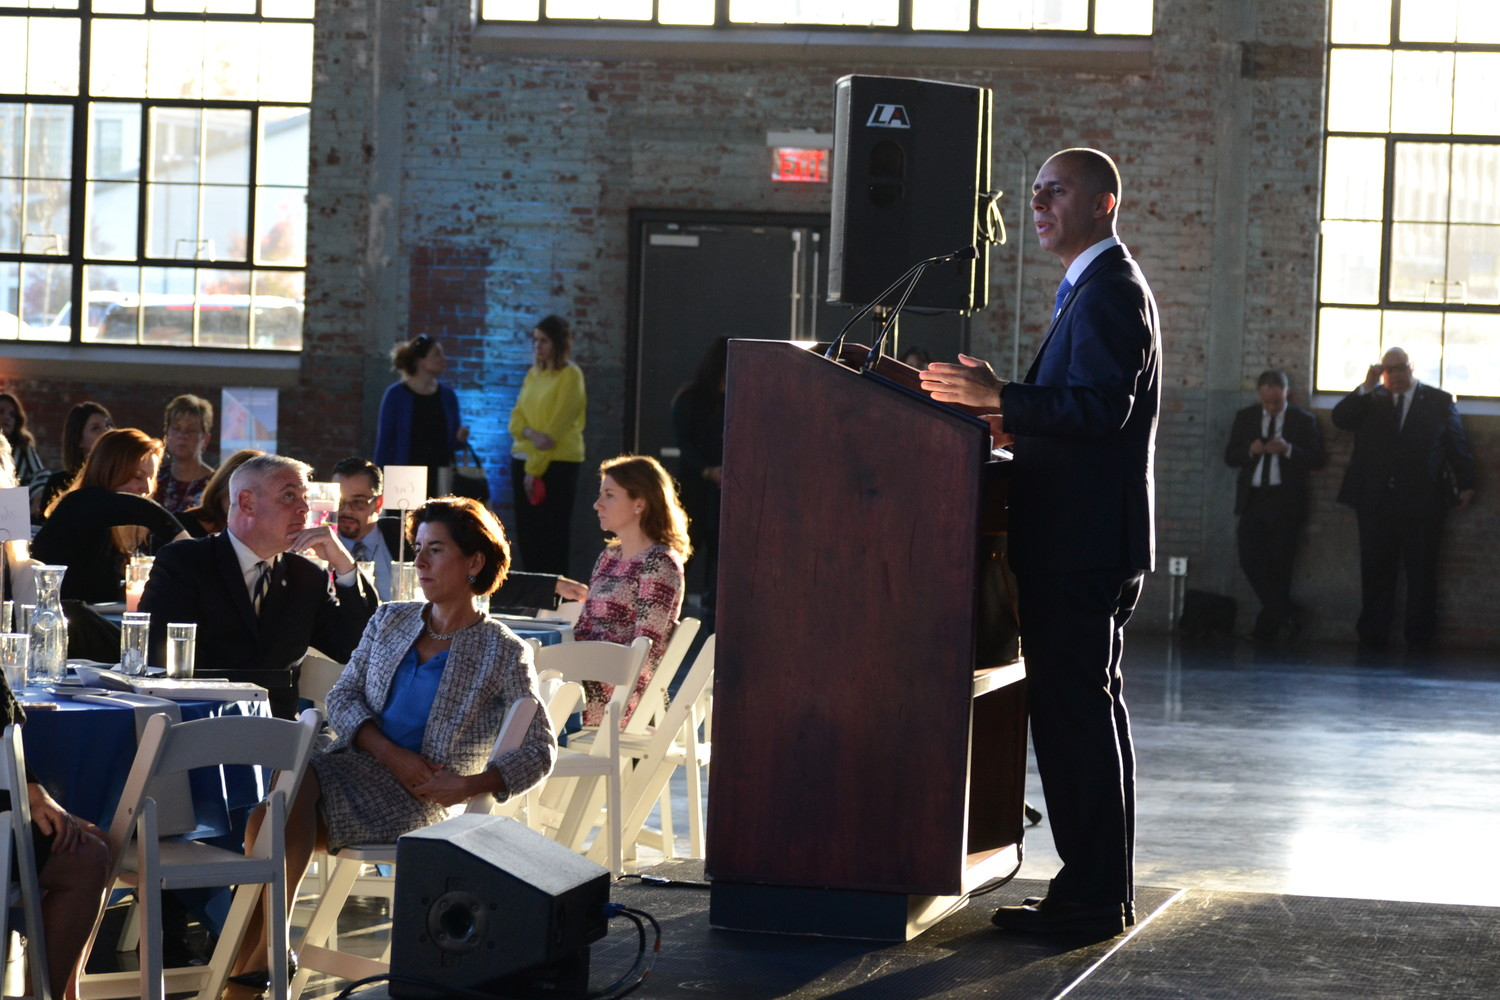 Warwick Mayor Scott Avedisian, Governor Gina Raimondo and Providence Mayor Jorge Elorza (at podium) at the award ceremony at the WaterFire Arts Center.